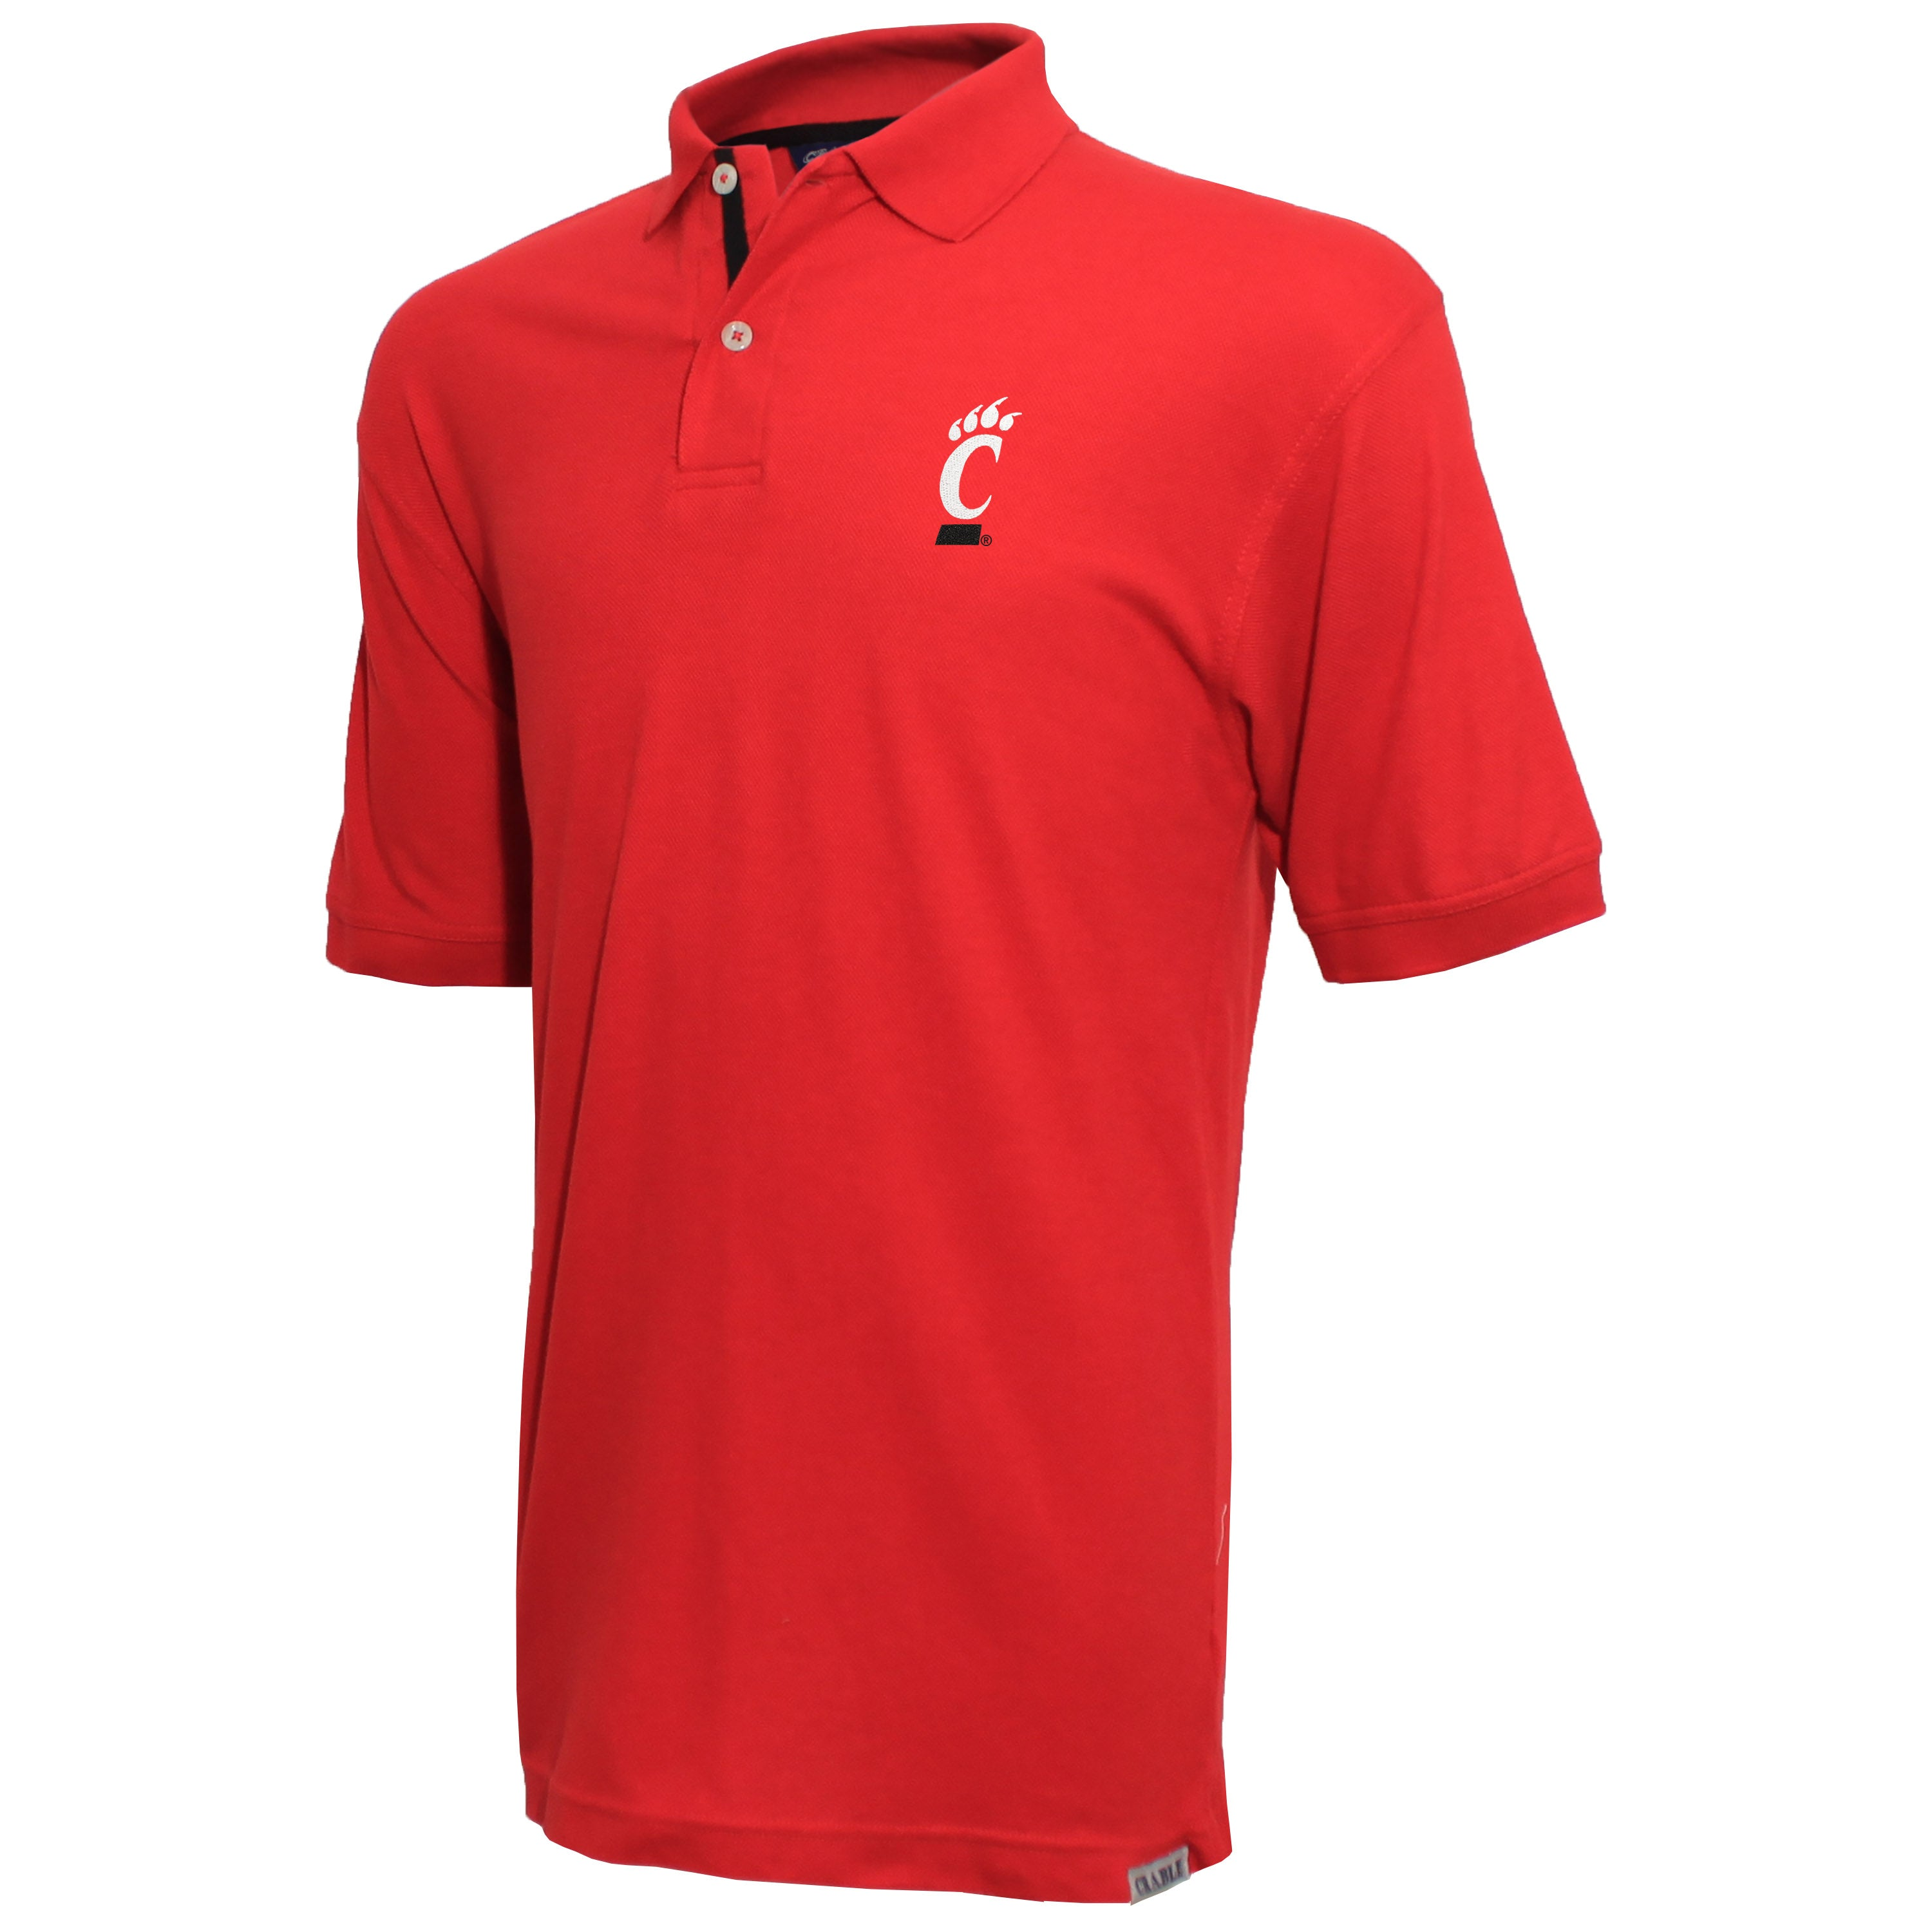 Crable Cincinnati Men's Red Pique Polo Shirt